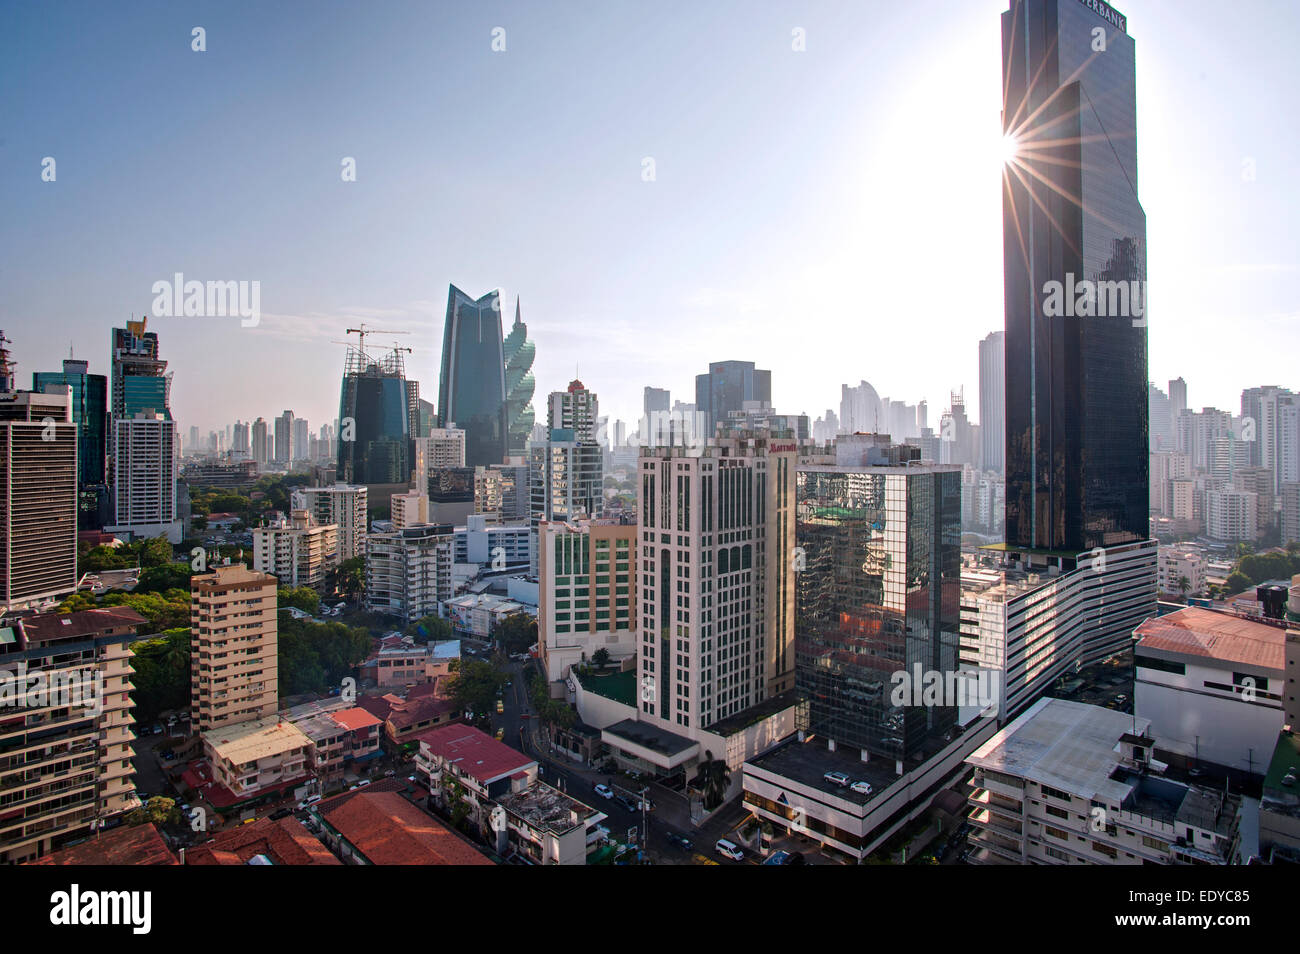 Skyline von Panama City, Panama Stockfoto